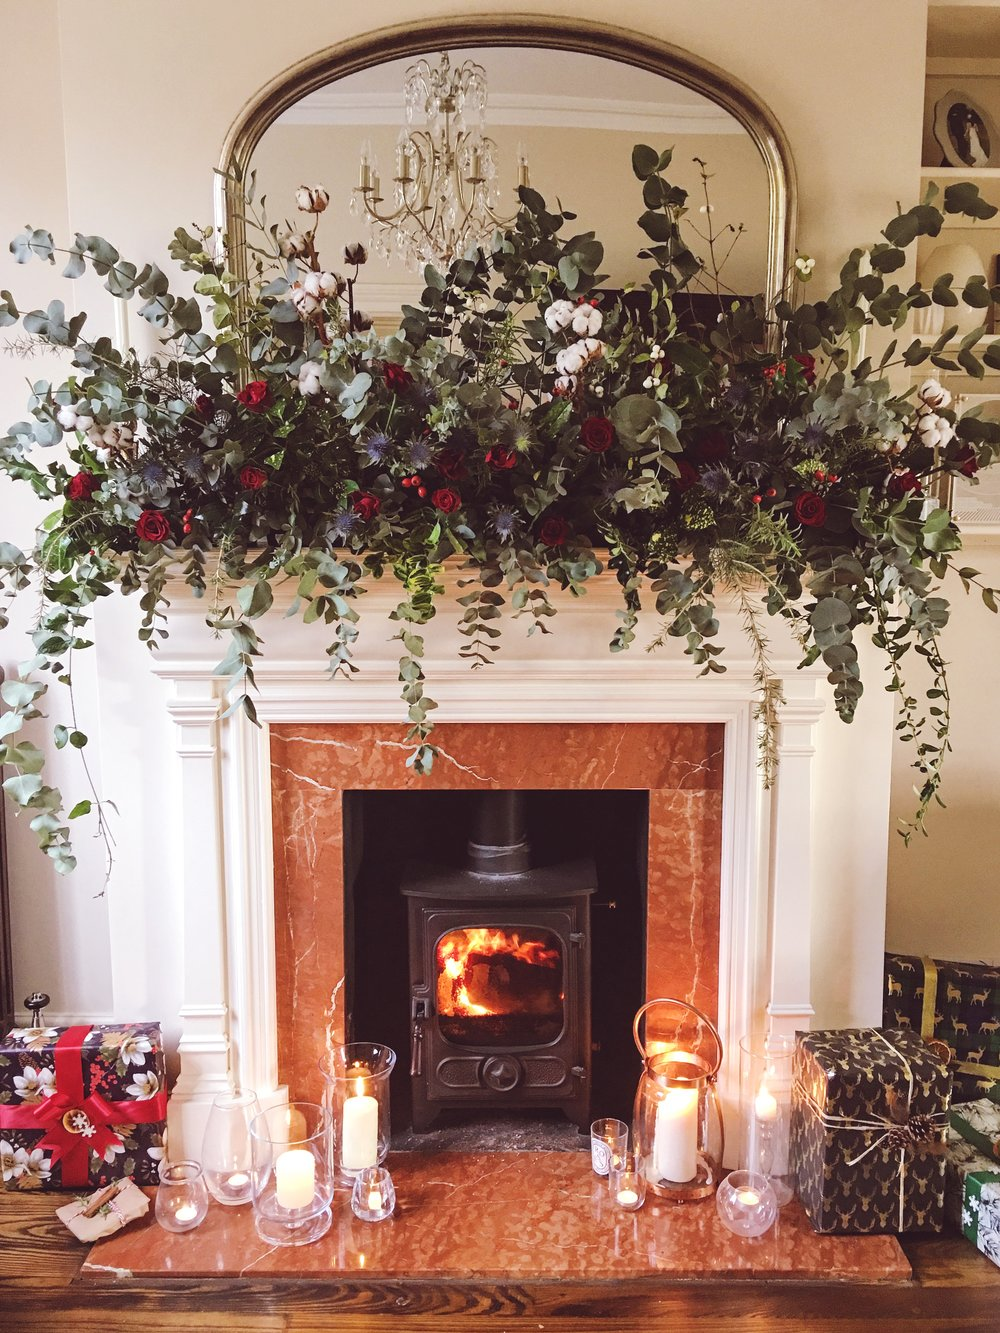 I've gone all out this year with a real flower fire surround garland!